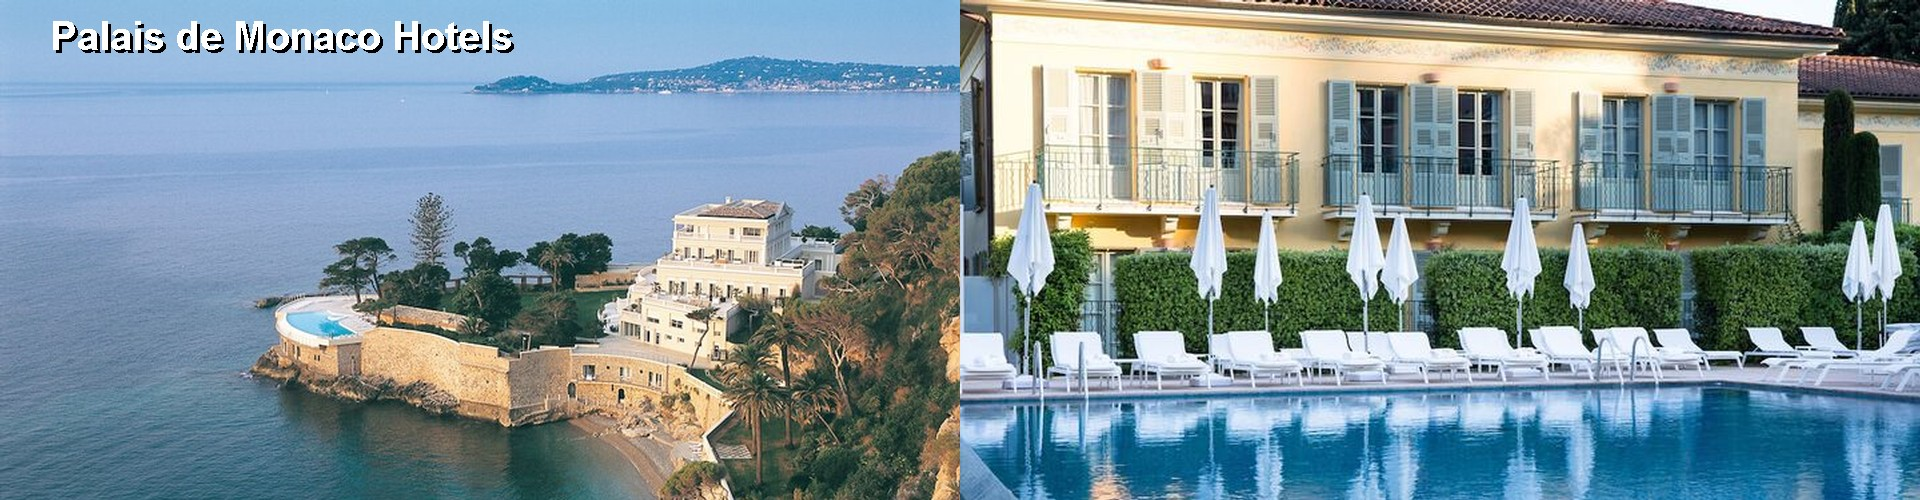 5 Best Hotels near Palais de Monaco